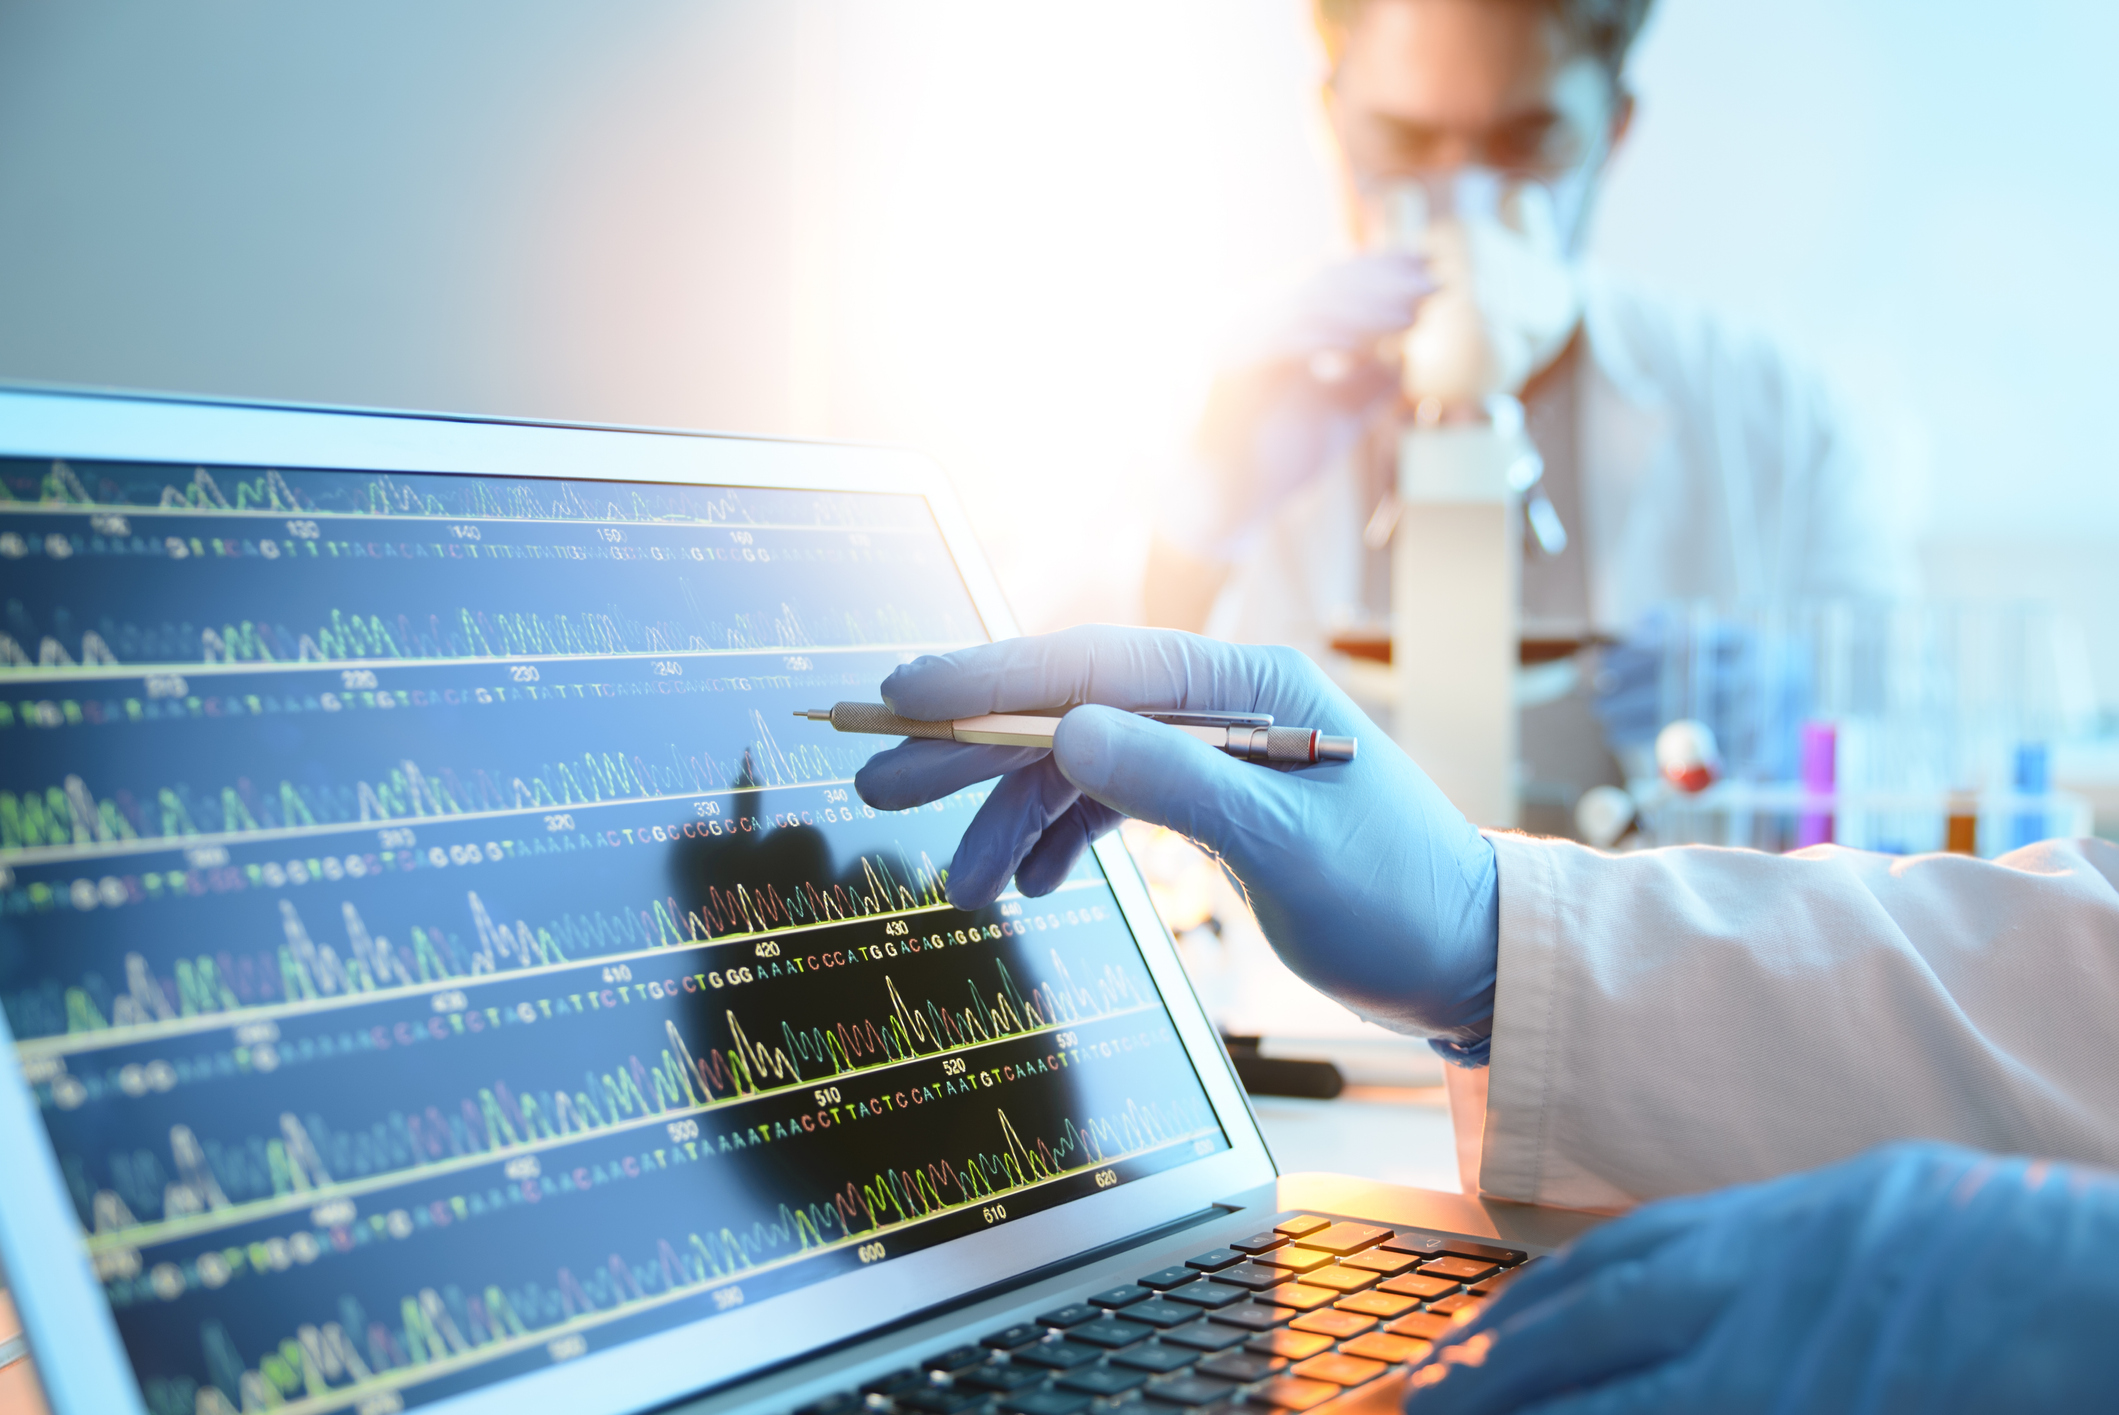 Trial Sponsors - Will gain access to transparent, peer-reviewed, and validated algorithms that have been commonly accepted by the industry. This advance should expedite clinical trials, reducing their cost, and improving patient access to treatments.